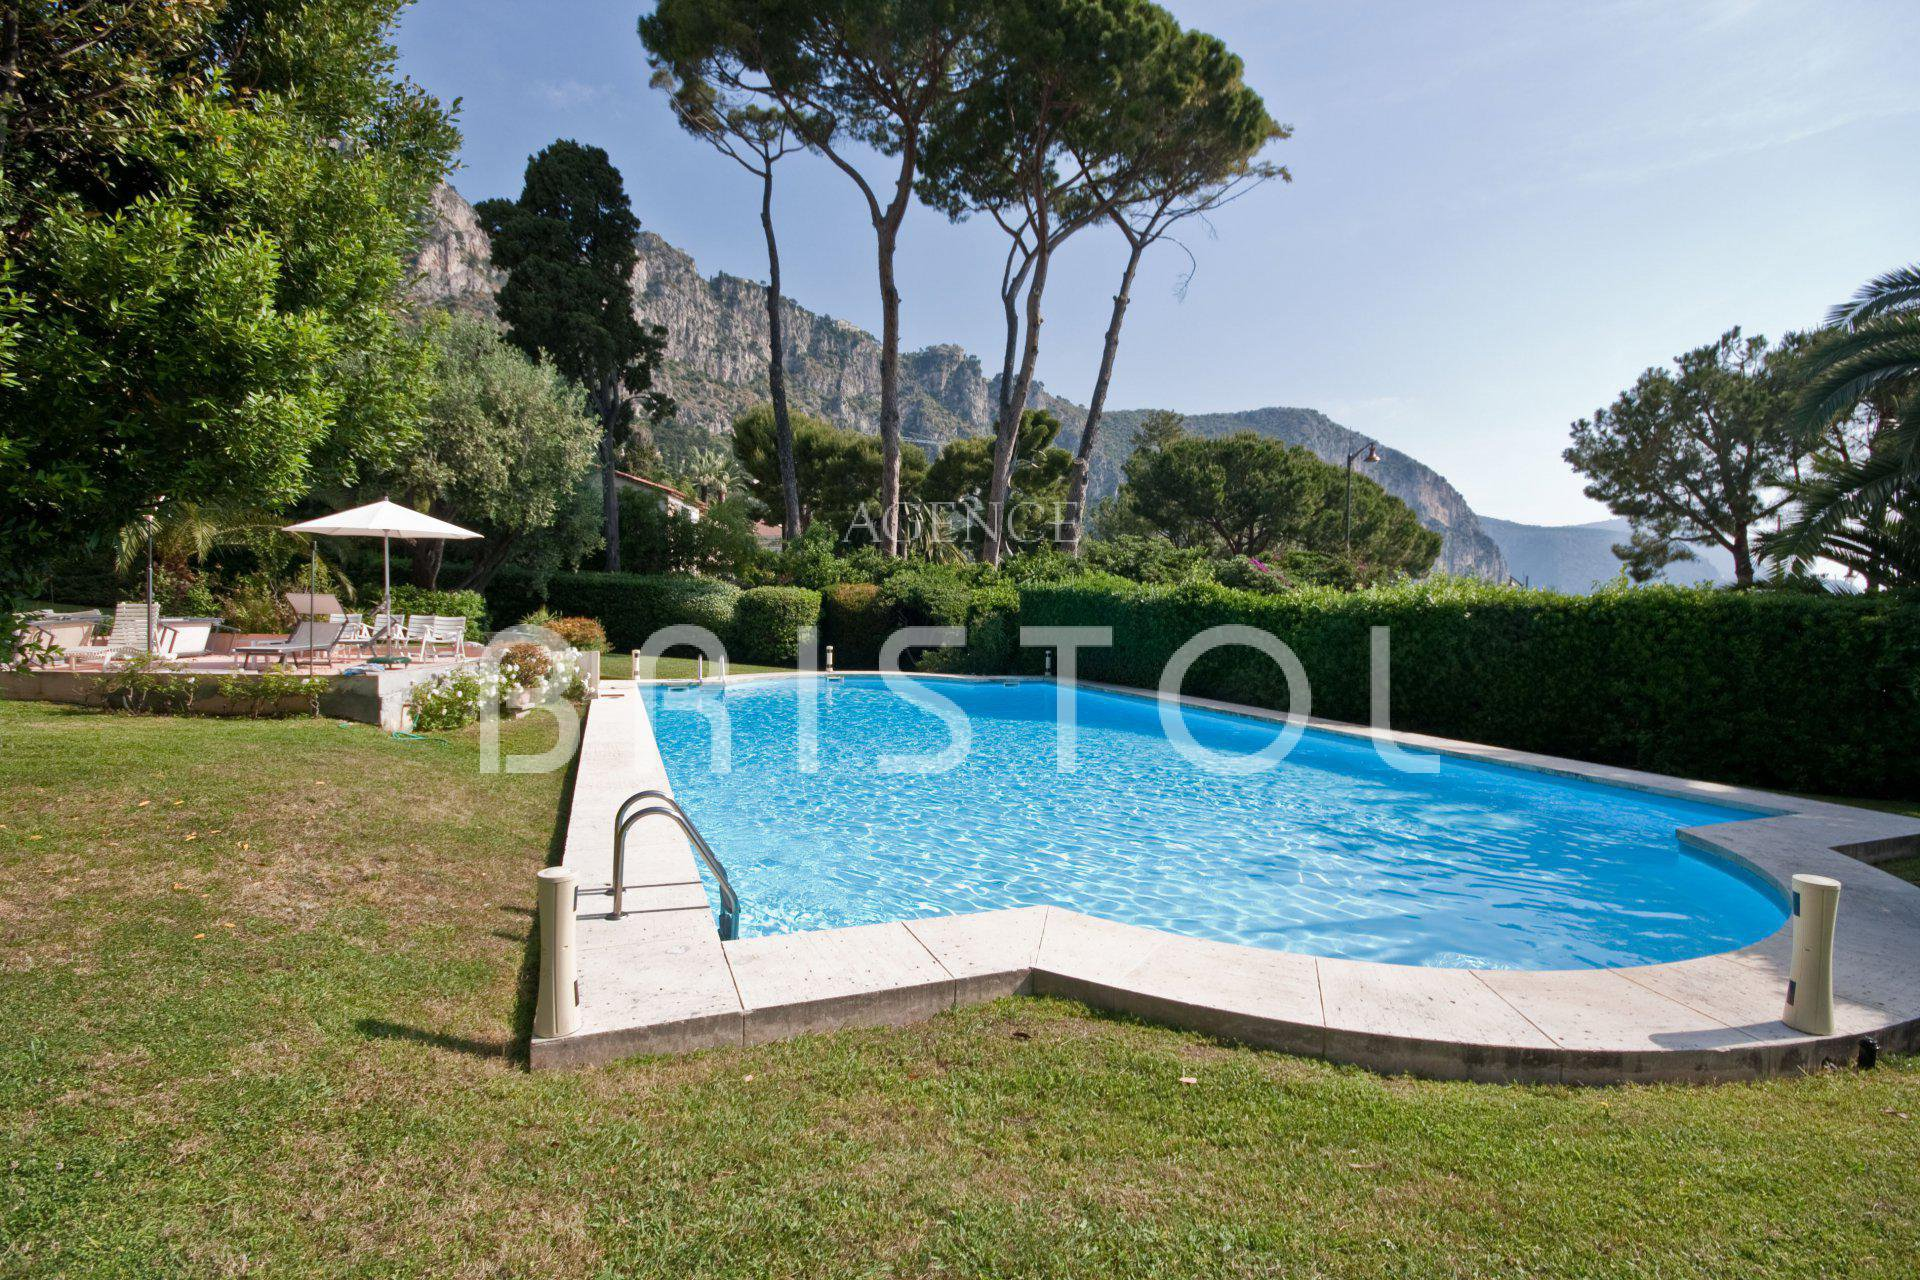 Luxury apartment for sale in Beaulieu sur Mer close to the sea